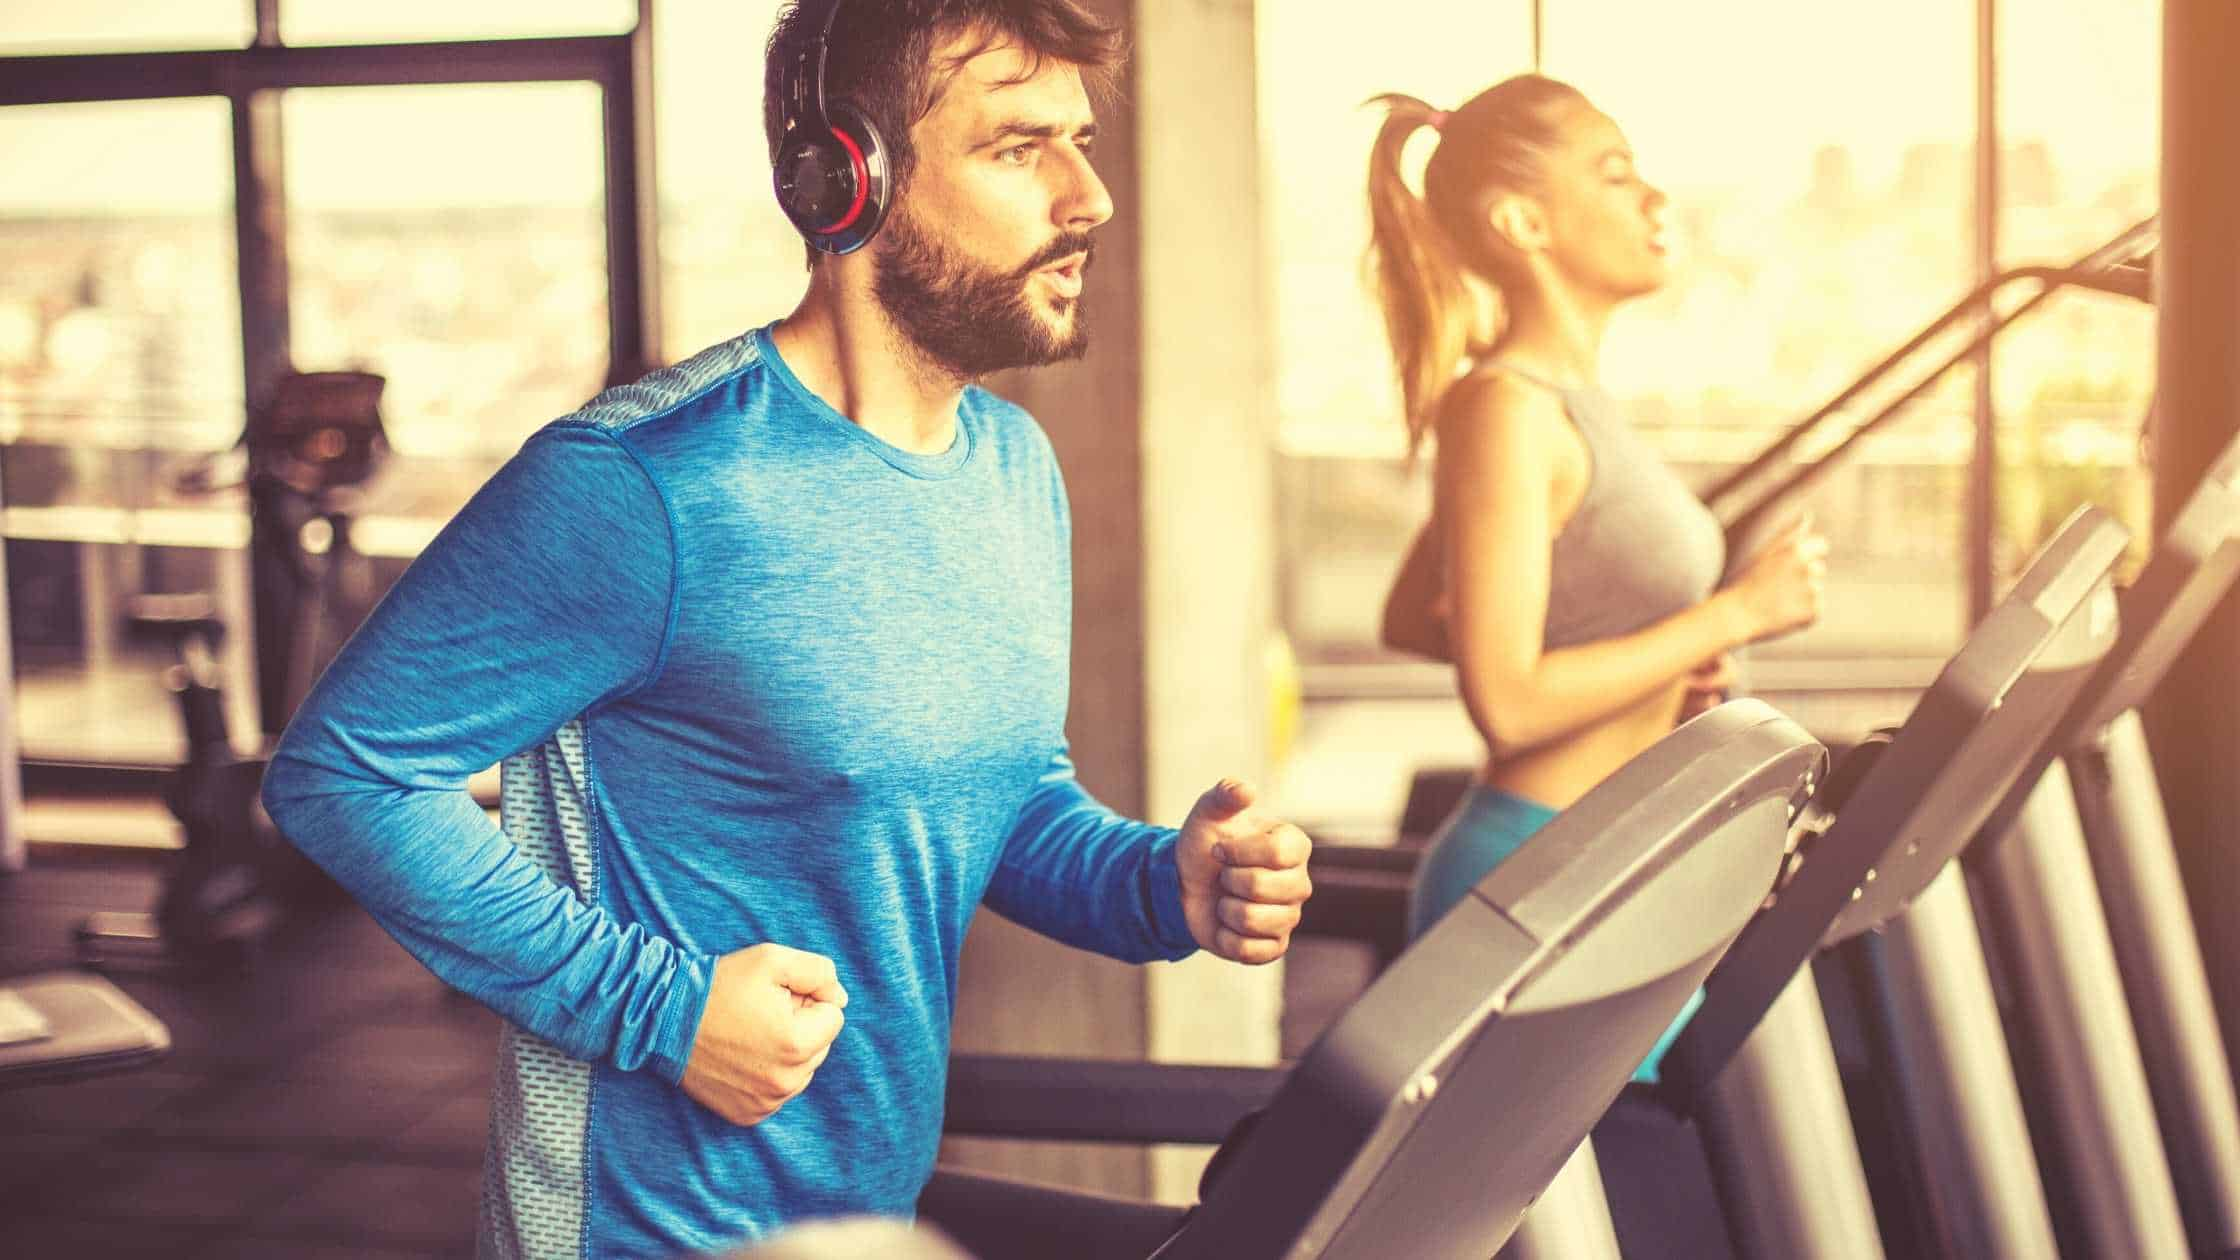 HIIT to lose stubborn belly fat